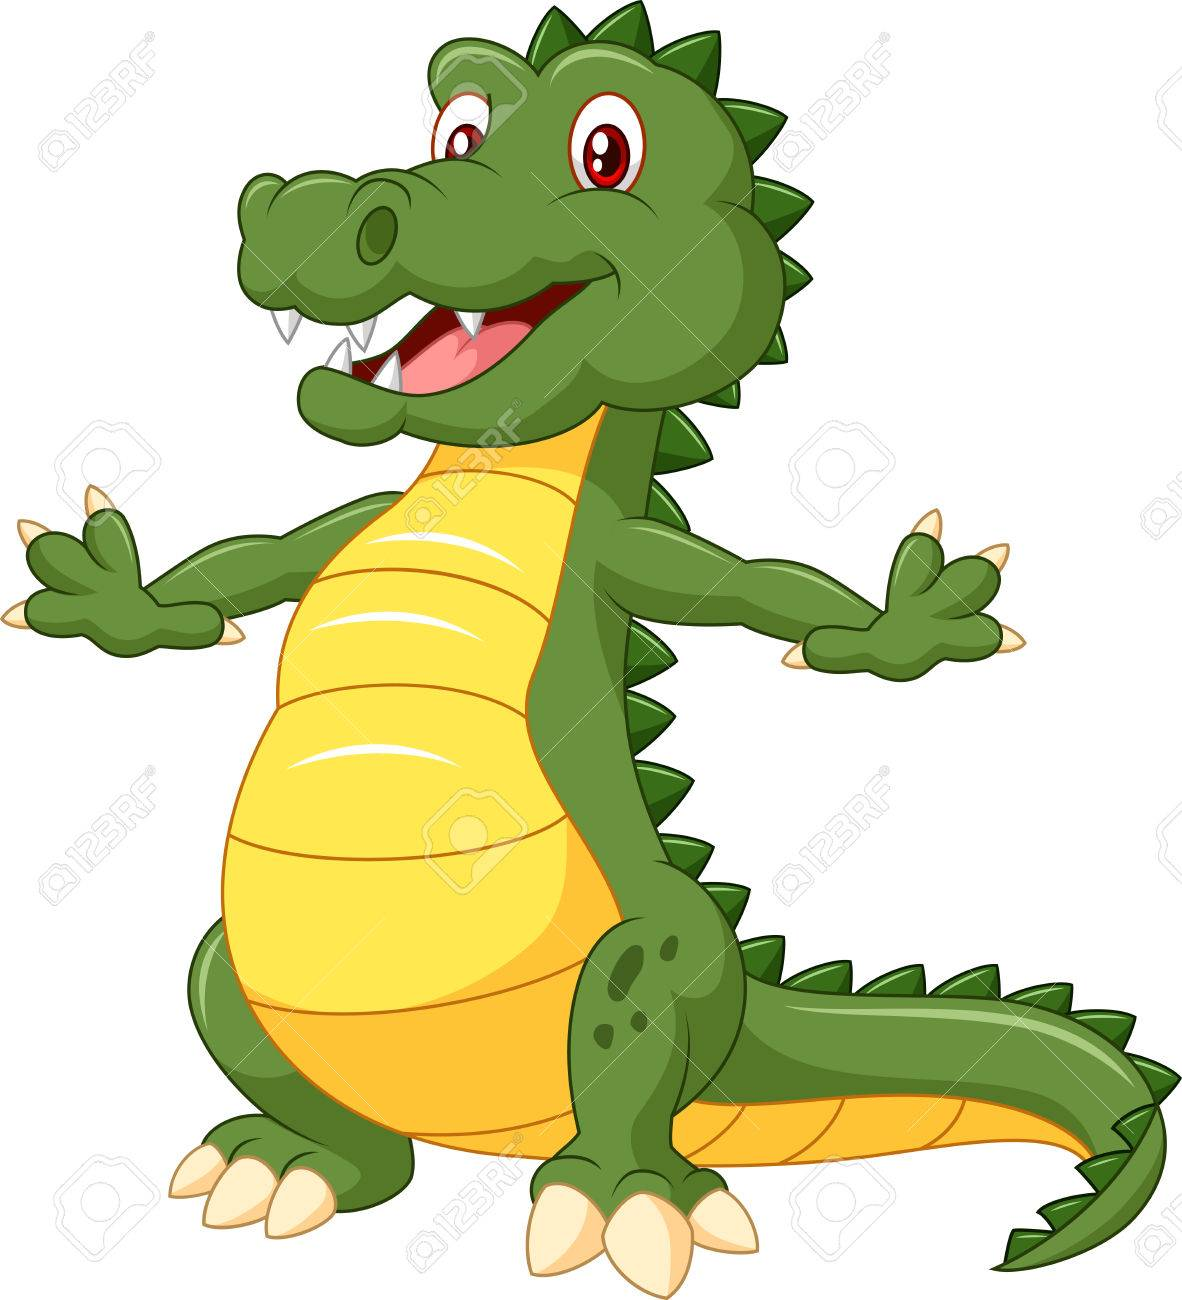 Cartoon Crocodile Standing With A Happy Face Vector Illustration